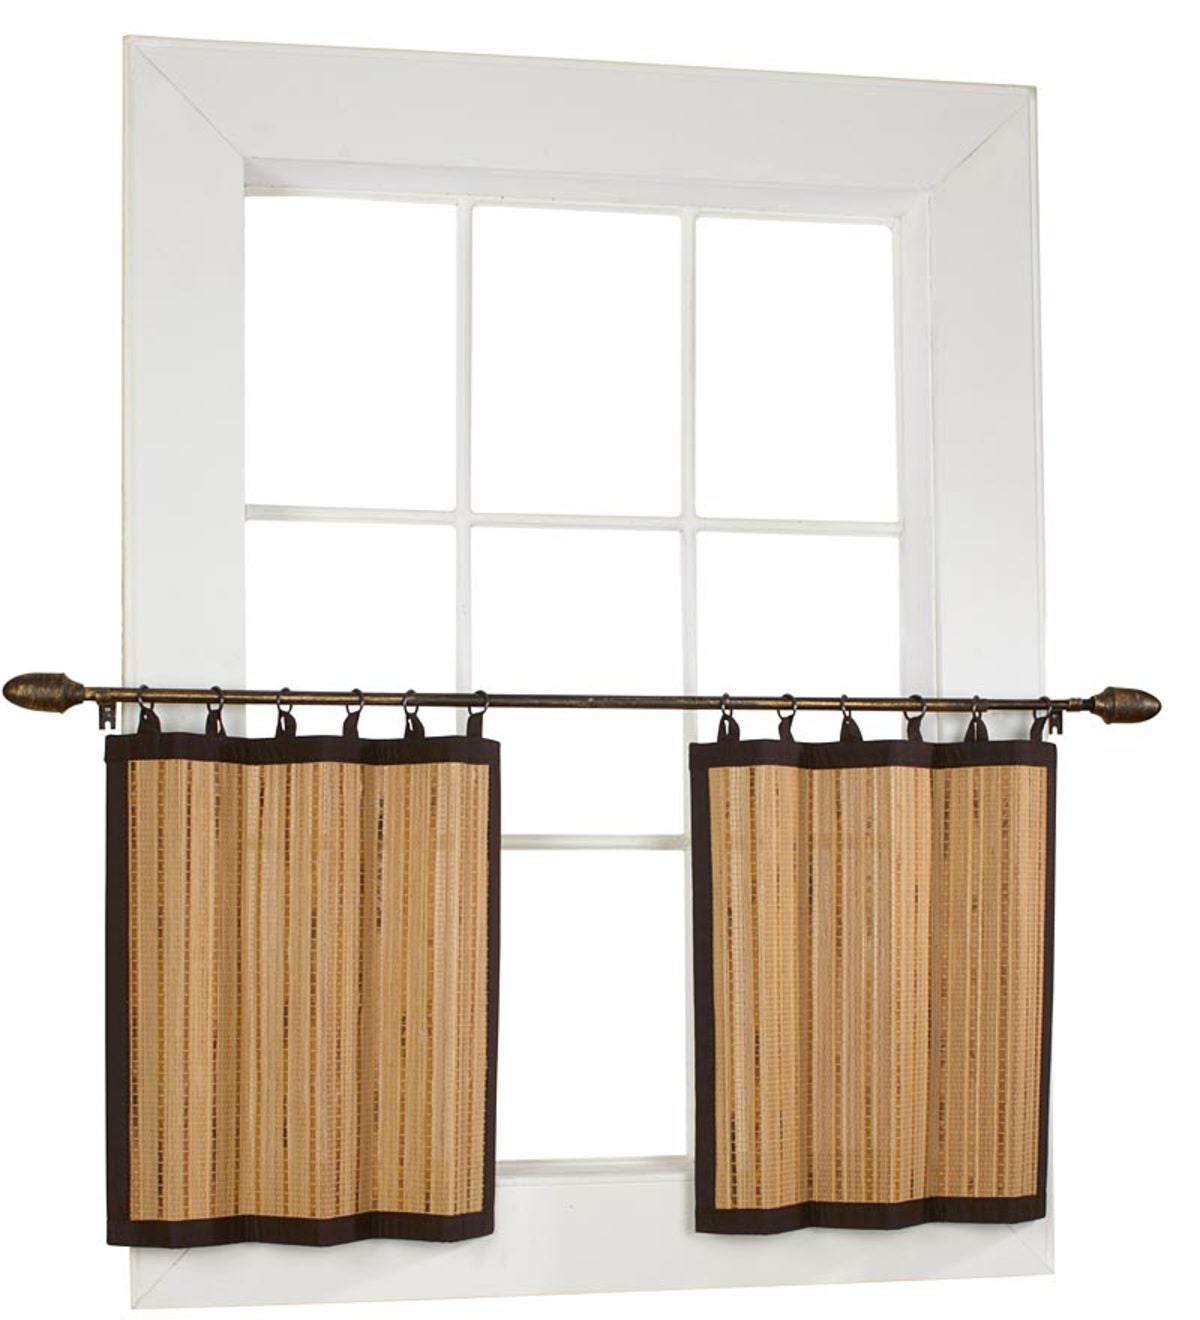 Easy Glide Bamboo Valance Eligible For Promotions